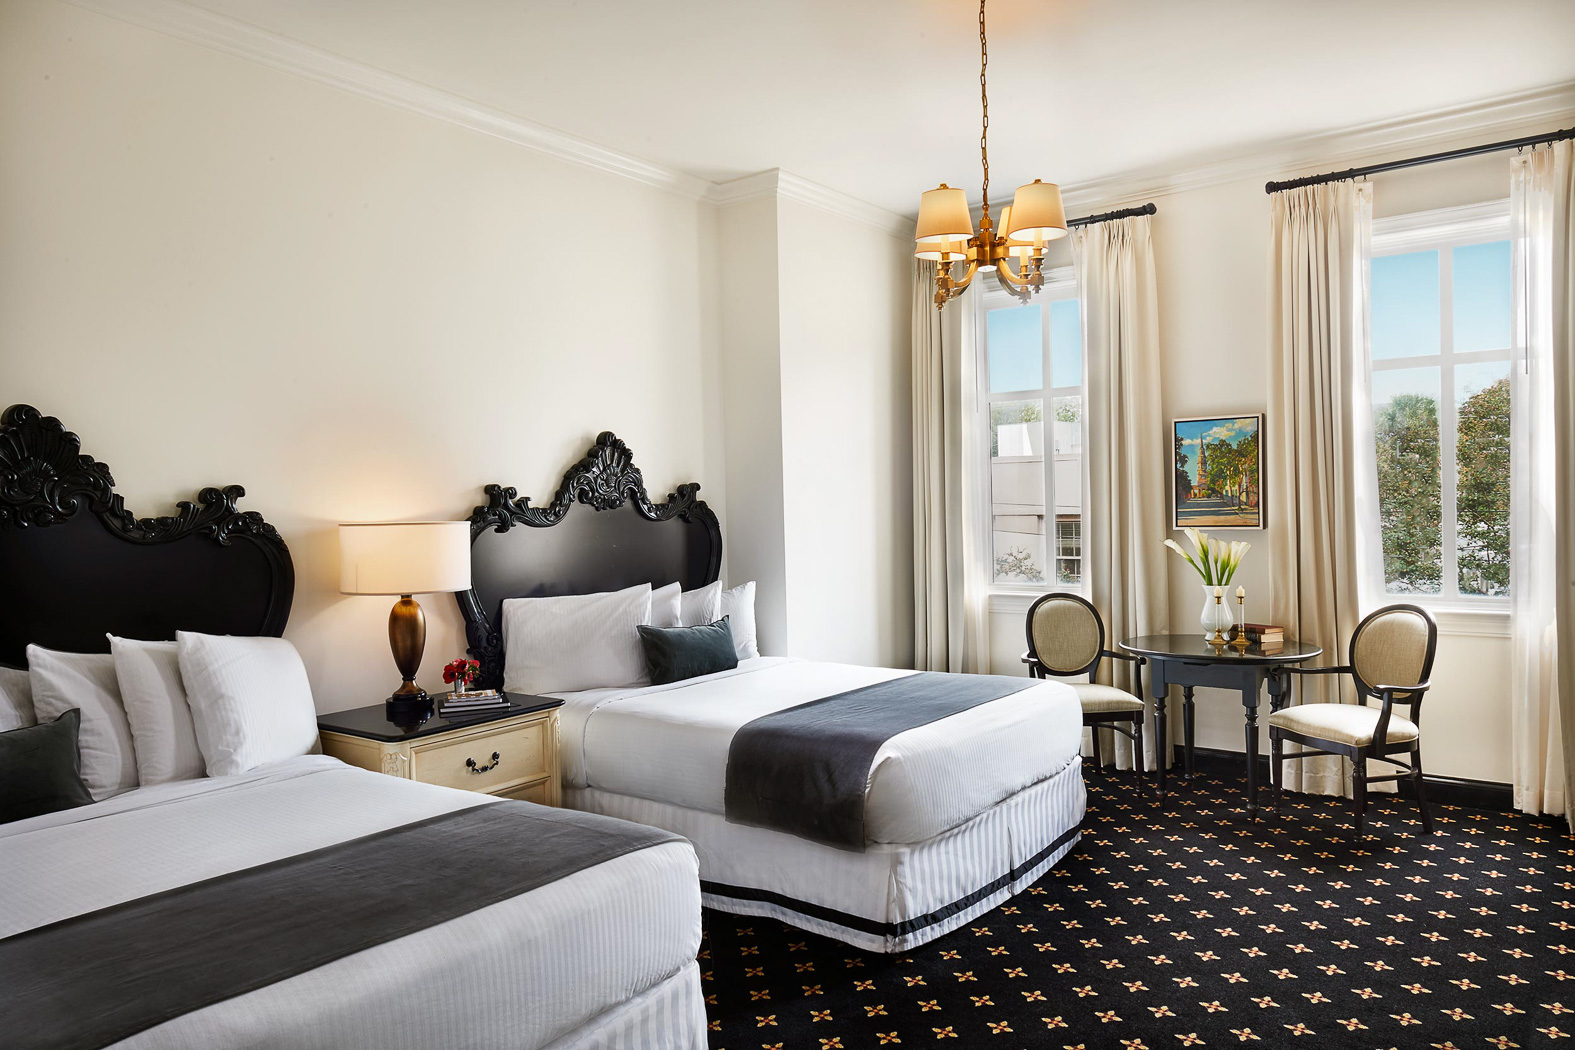 Luxury hotels in charleston sc rooms french quarter inn - 2 bedroom hotels in charleston sc ...